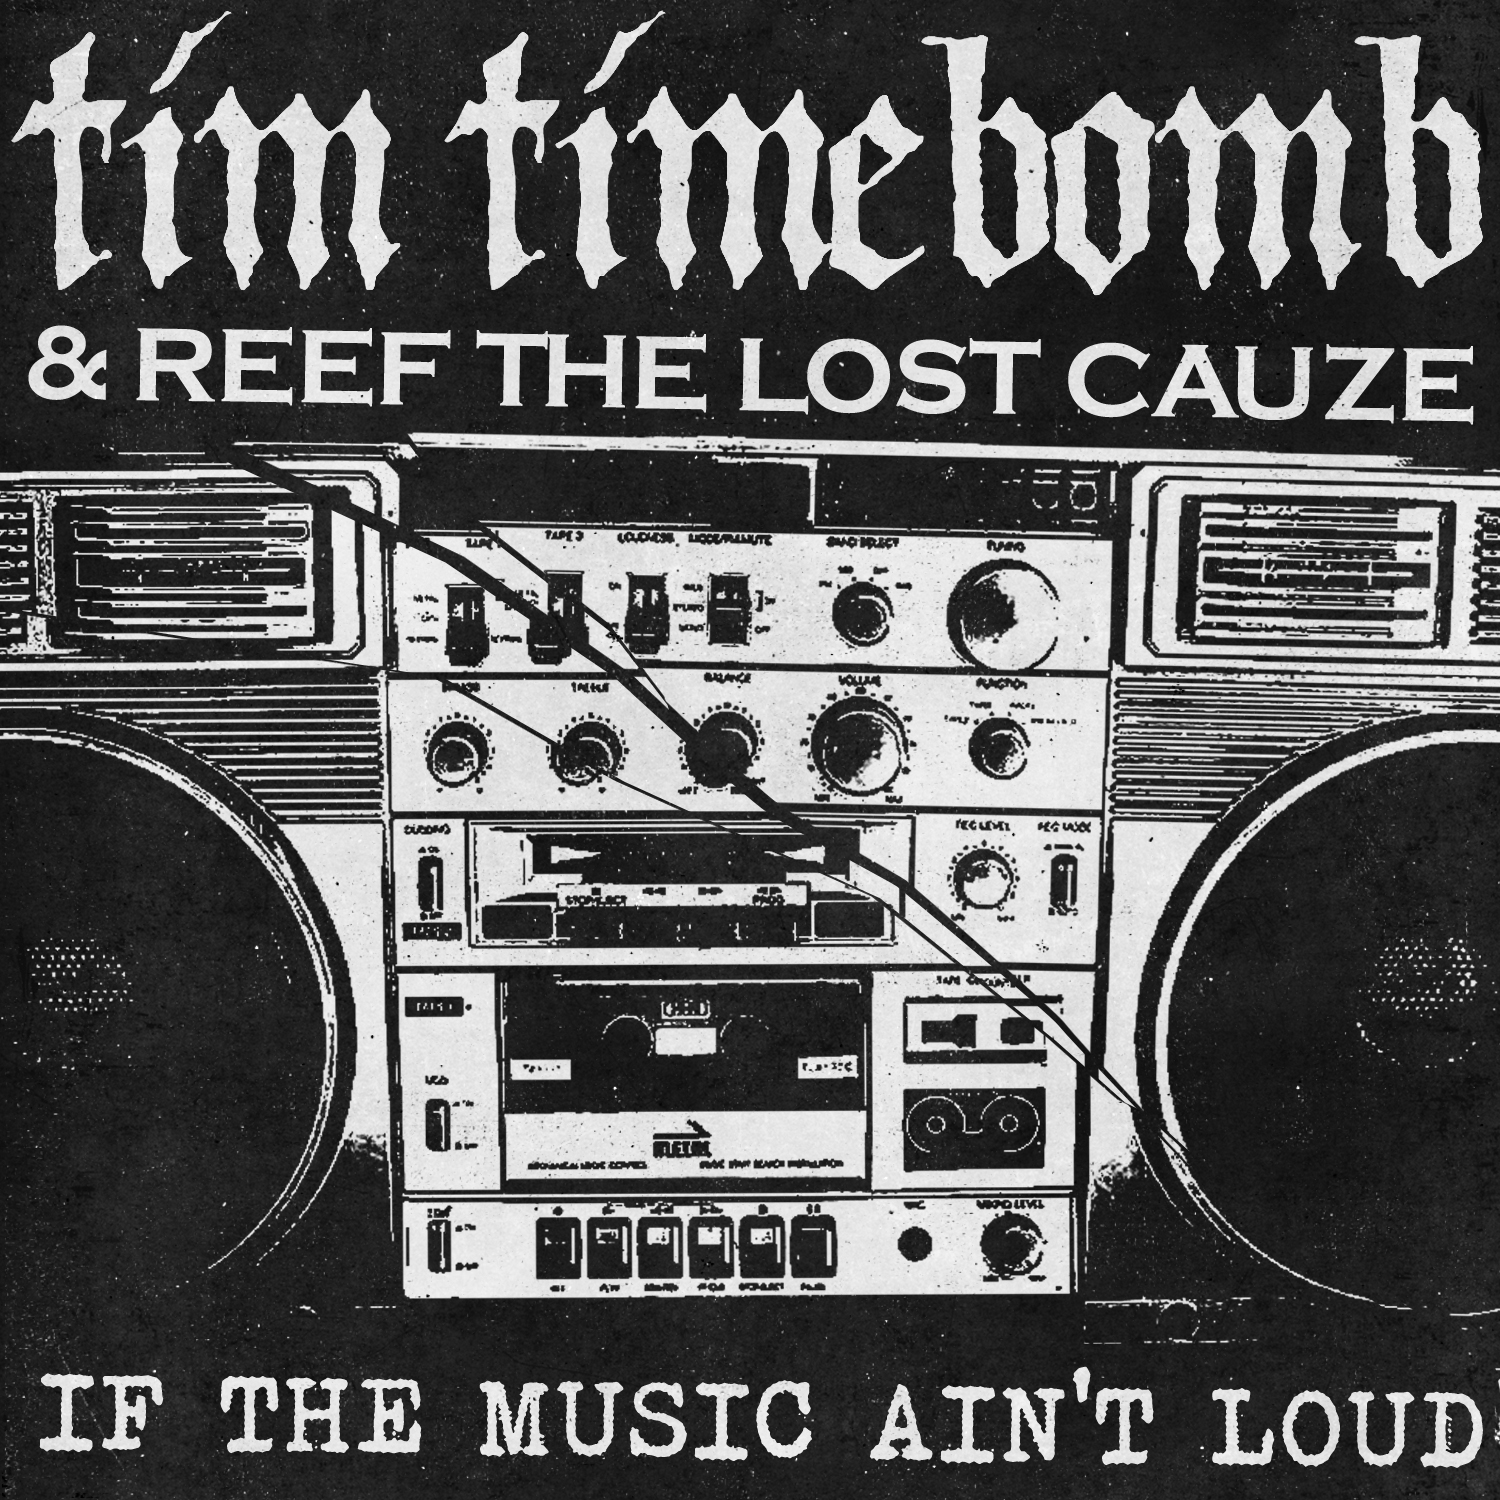 ____IF THE MUSIC AINT LOUD